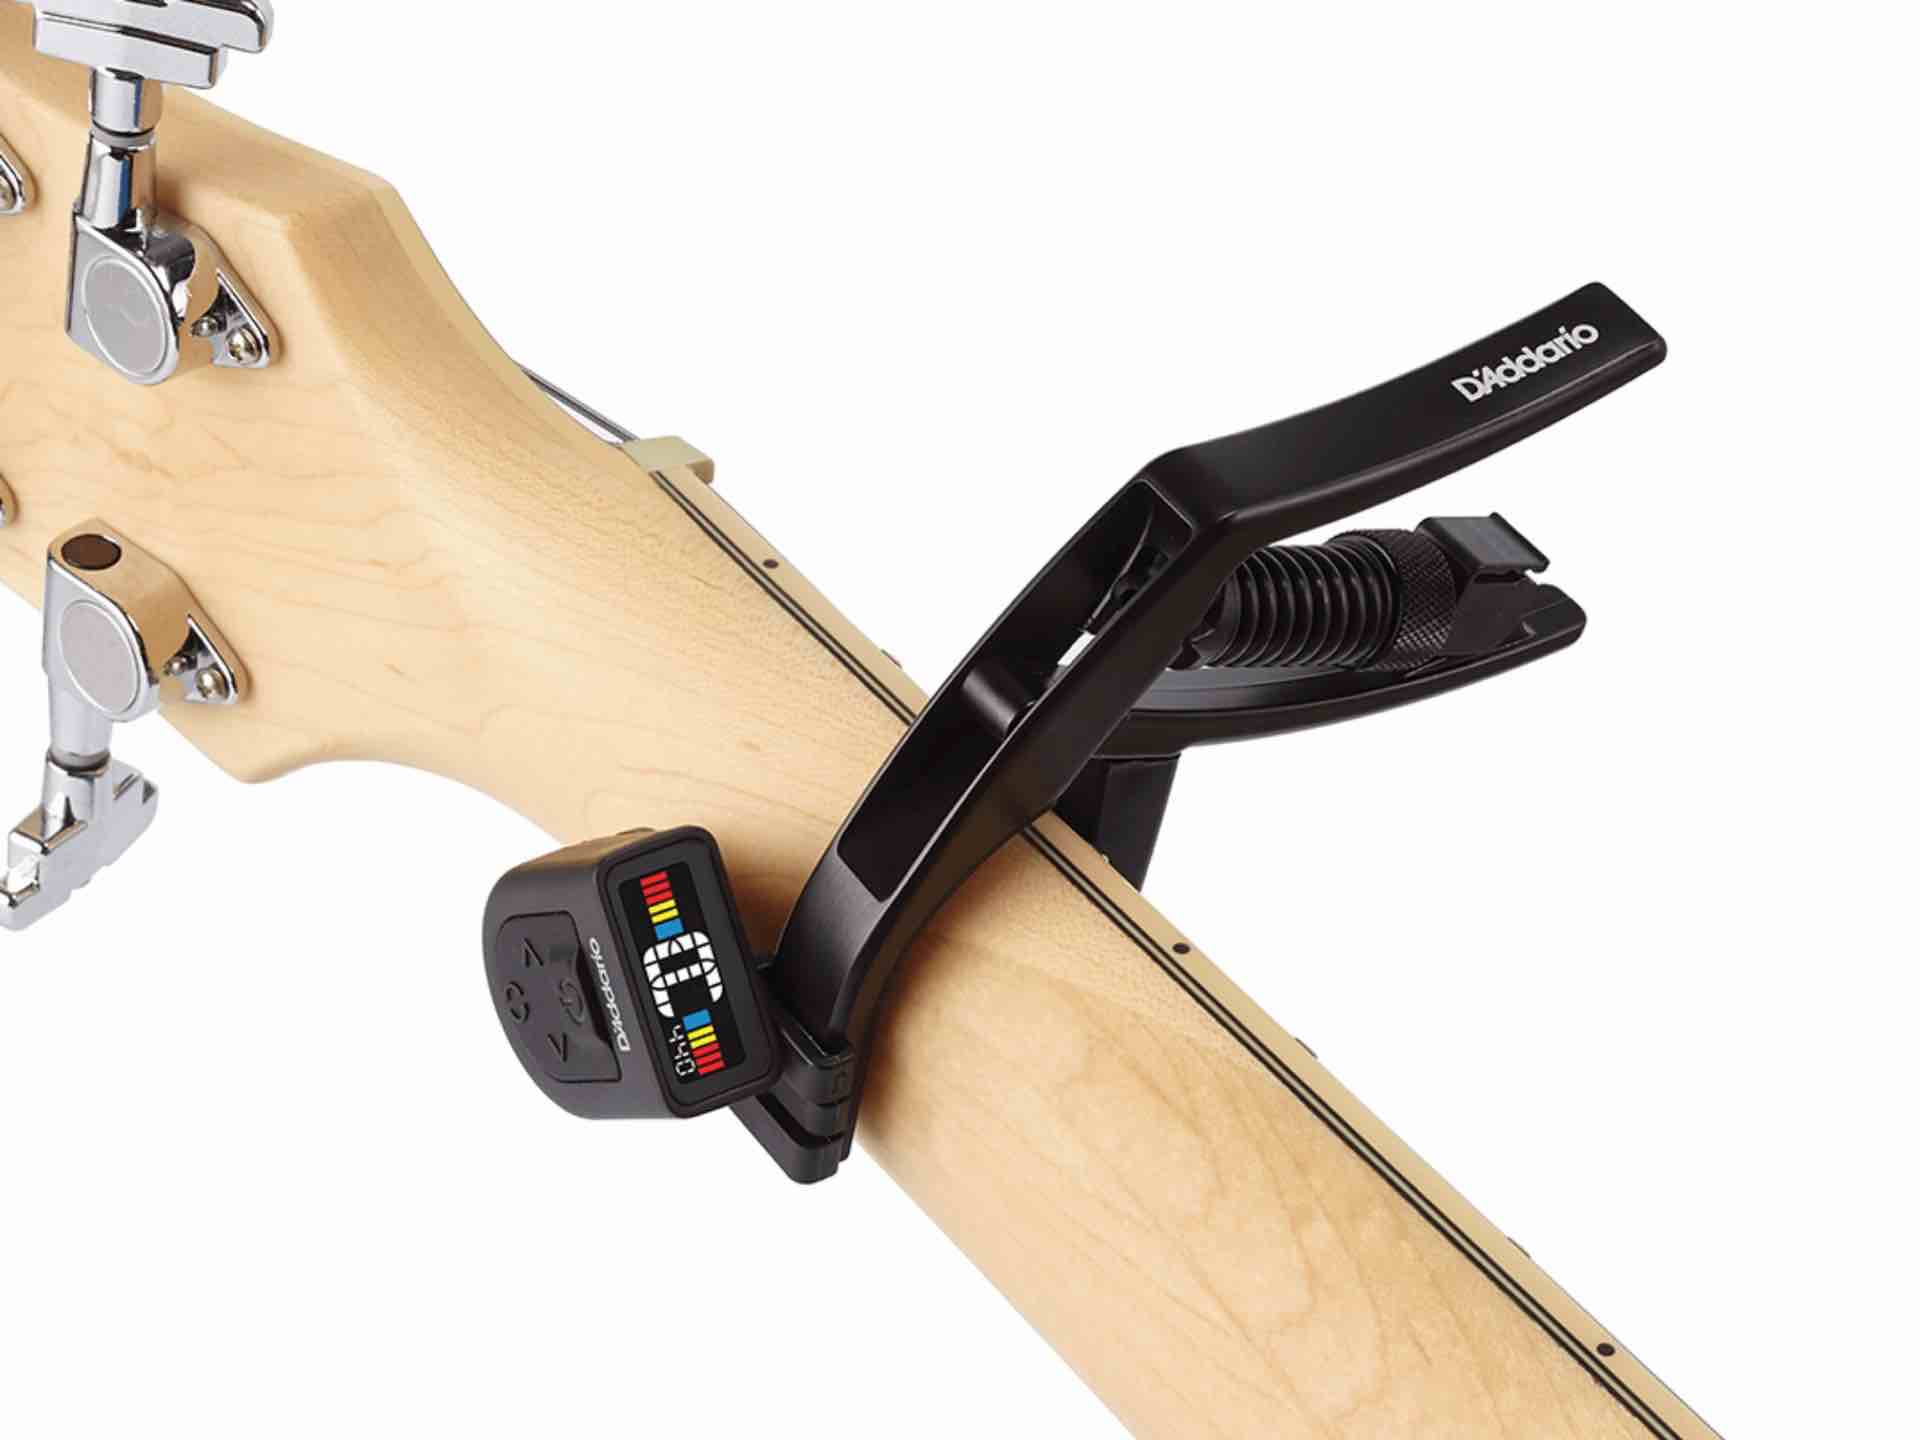 daddario-accessories-ns-artist-guitar-capo-with-tuner